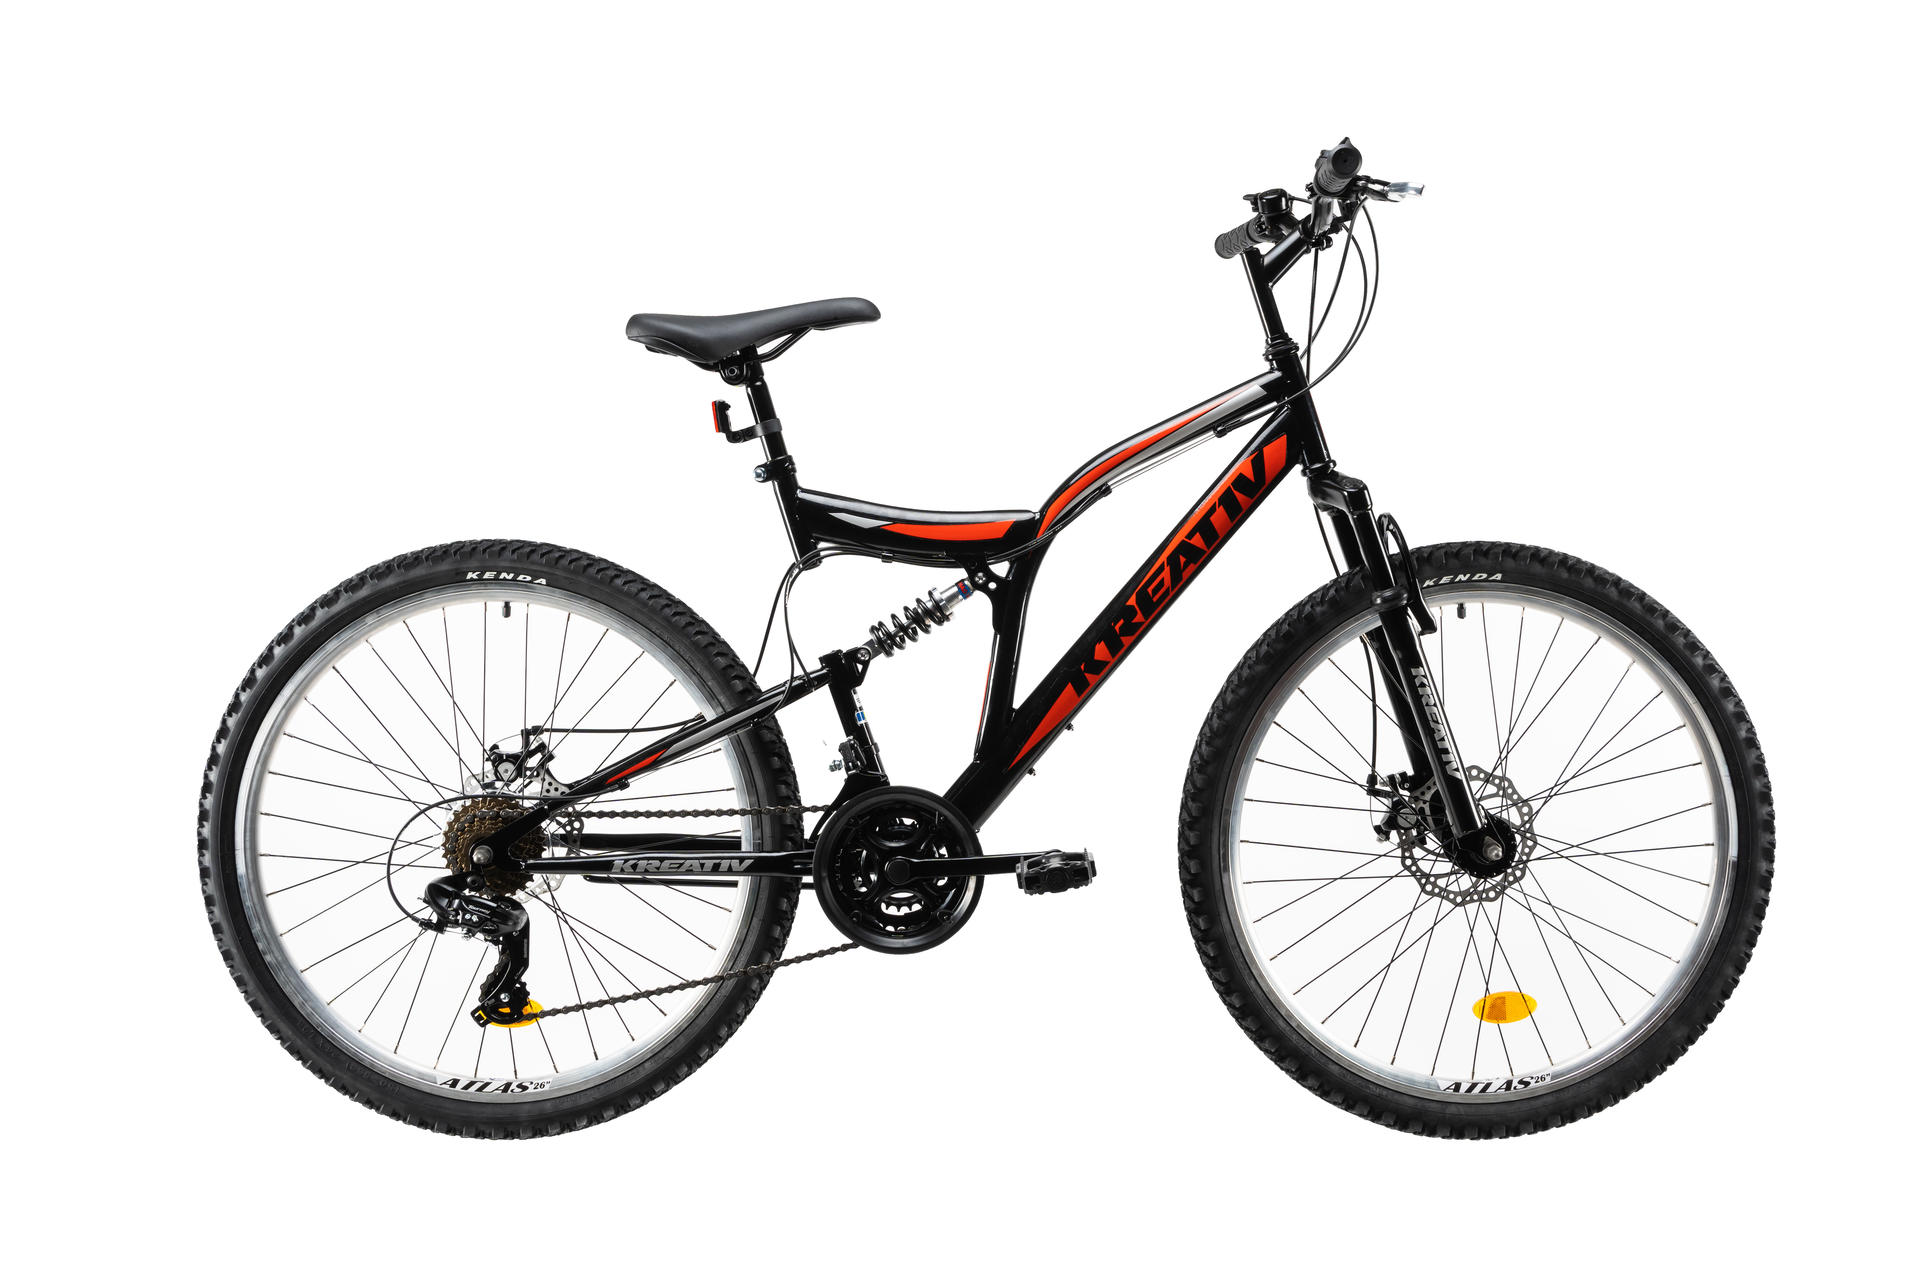 Mountain bike KREATIV 2643 Black